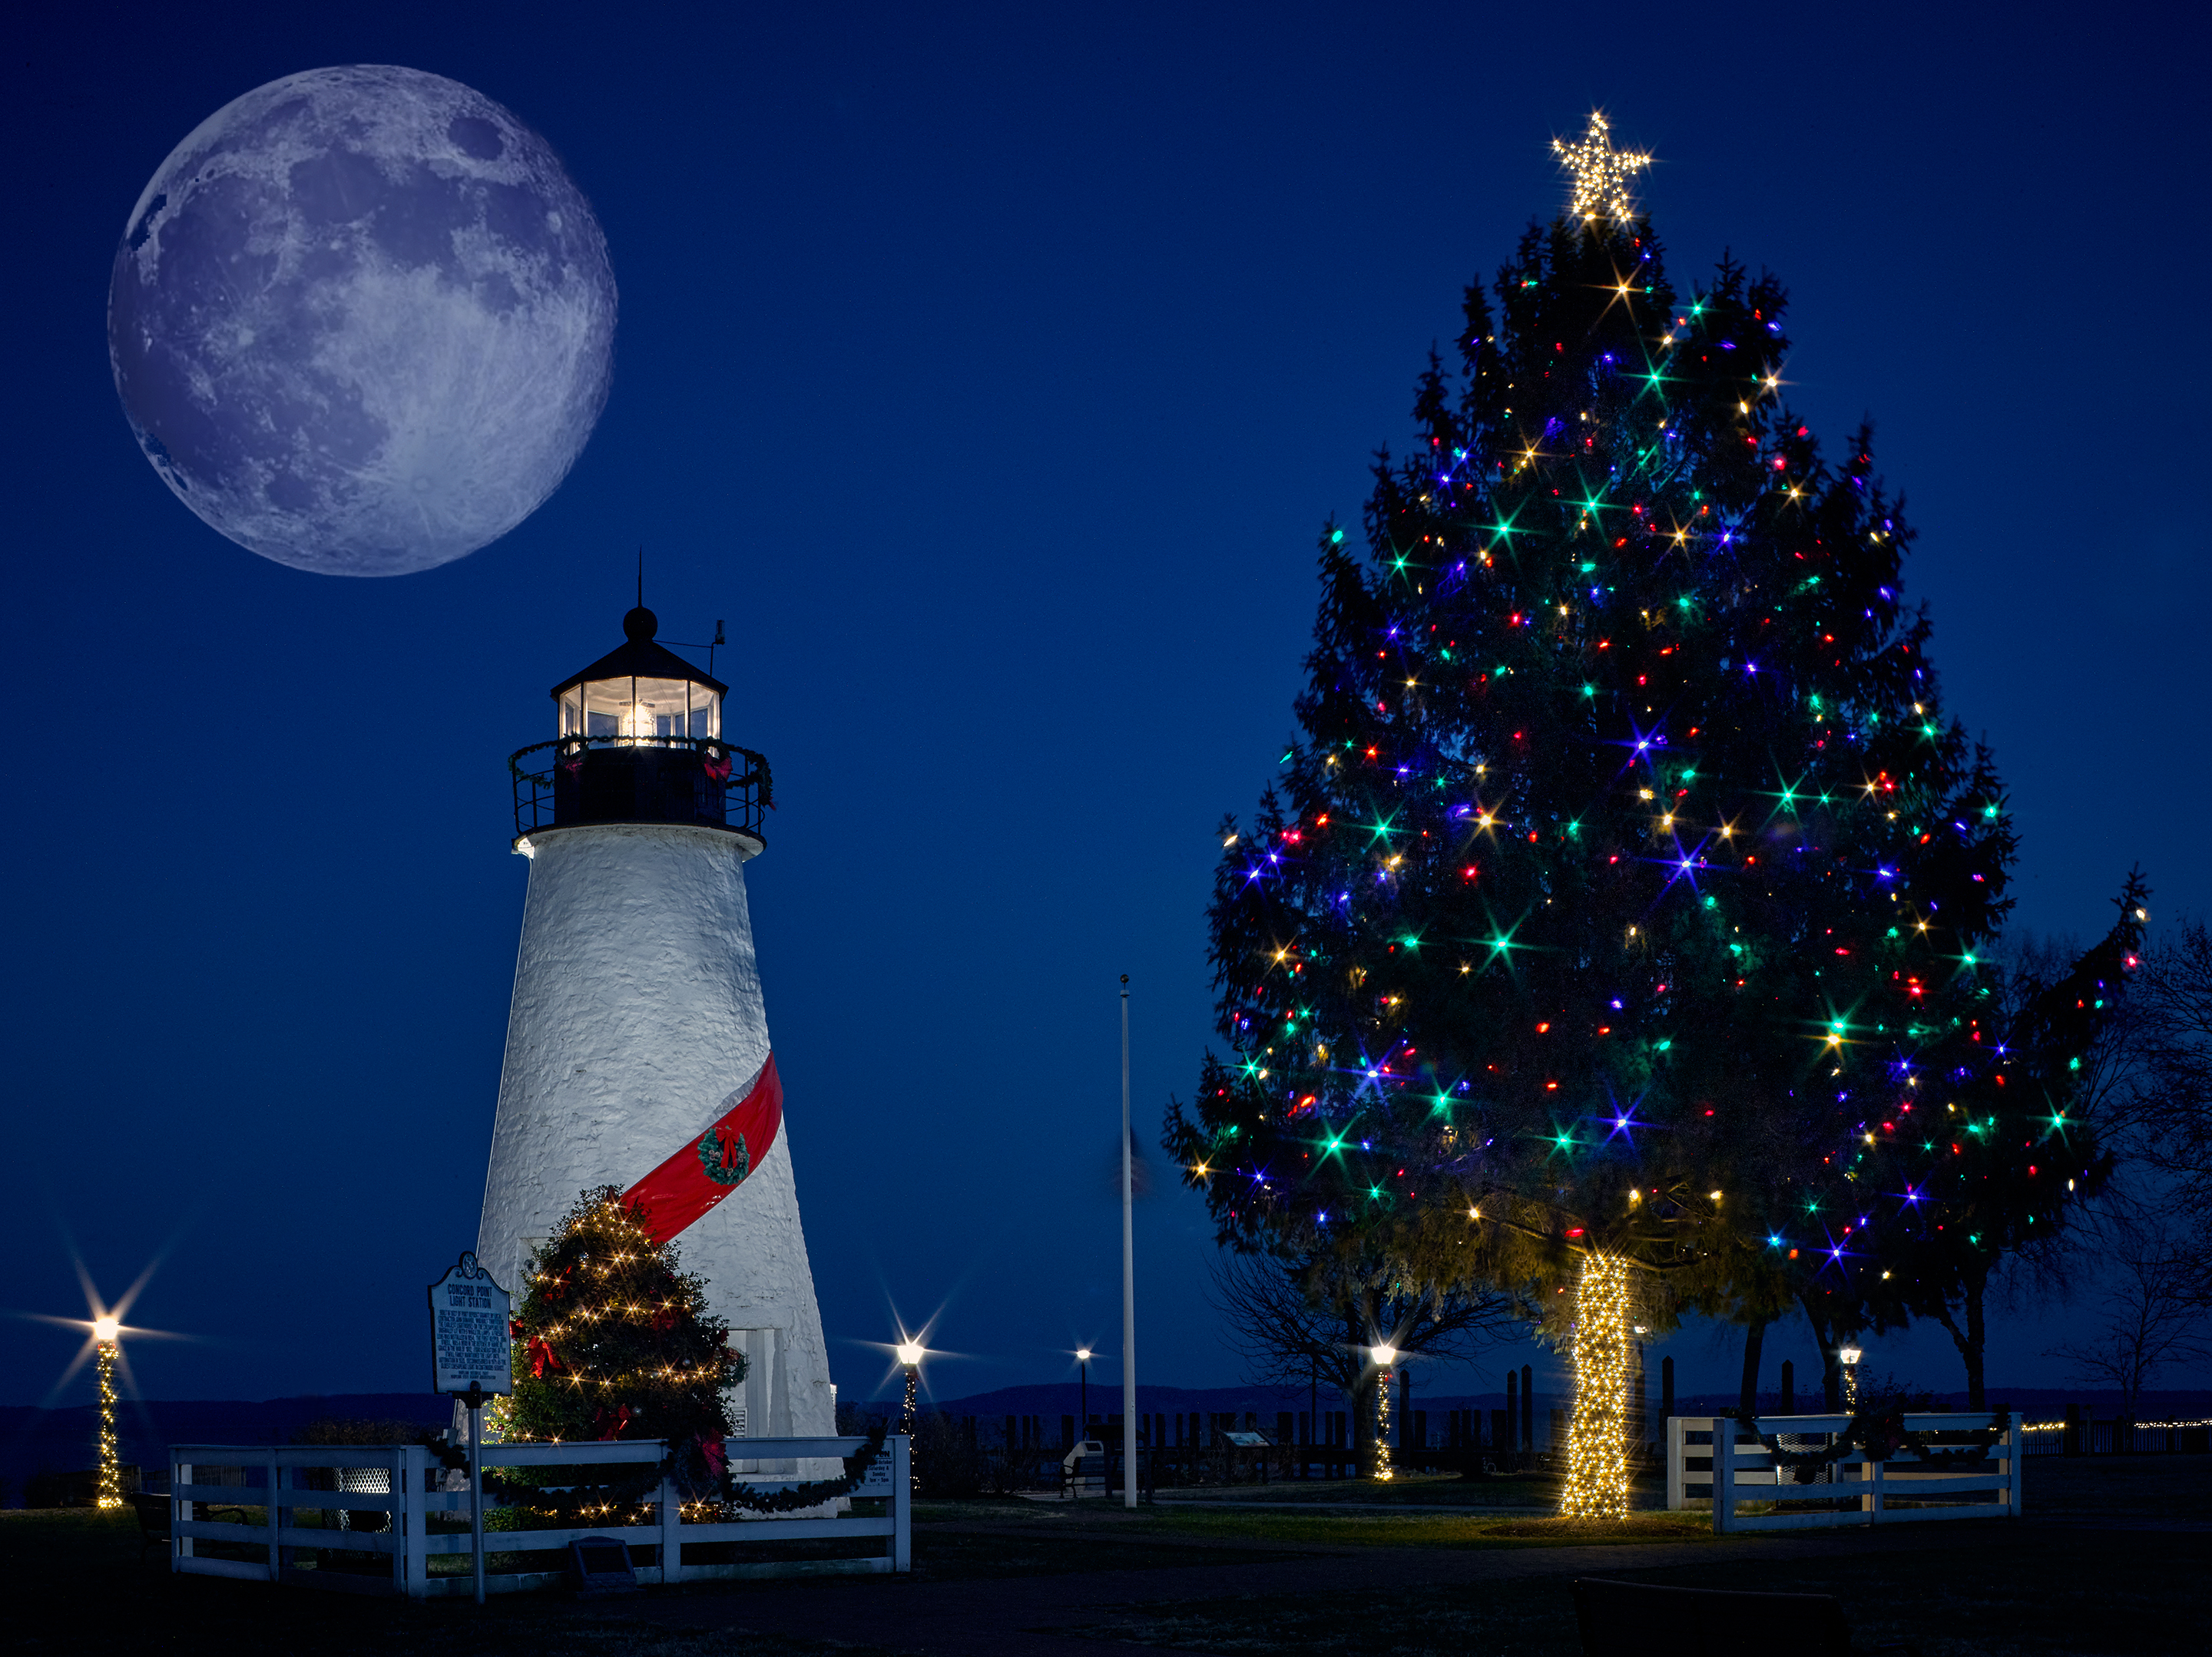 concord_Point_Lighthouse_Moon_Fin